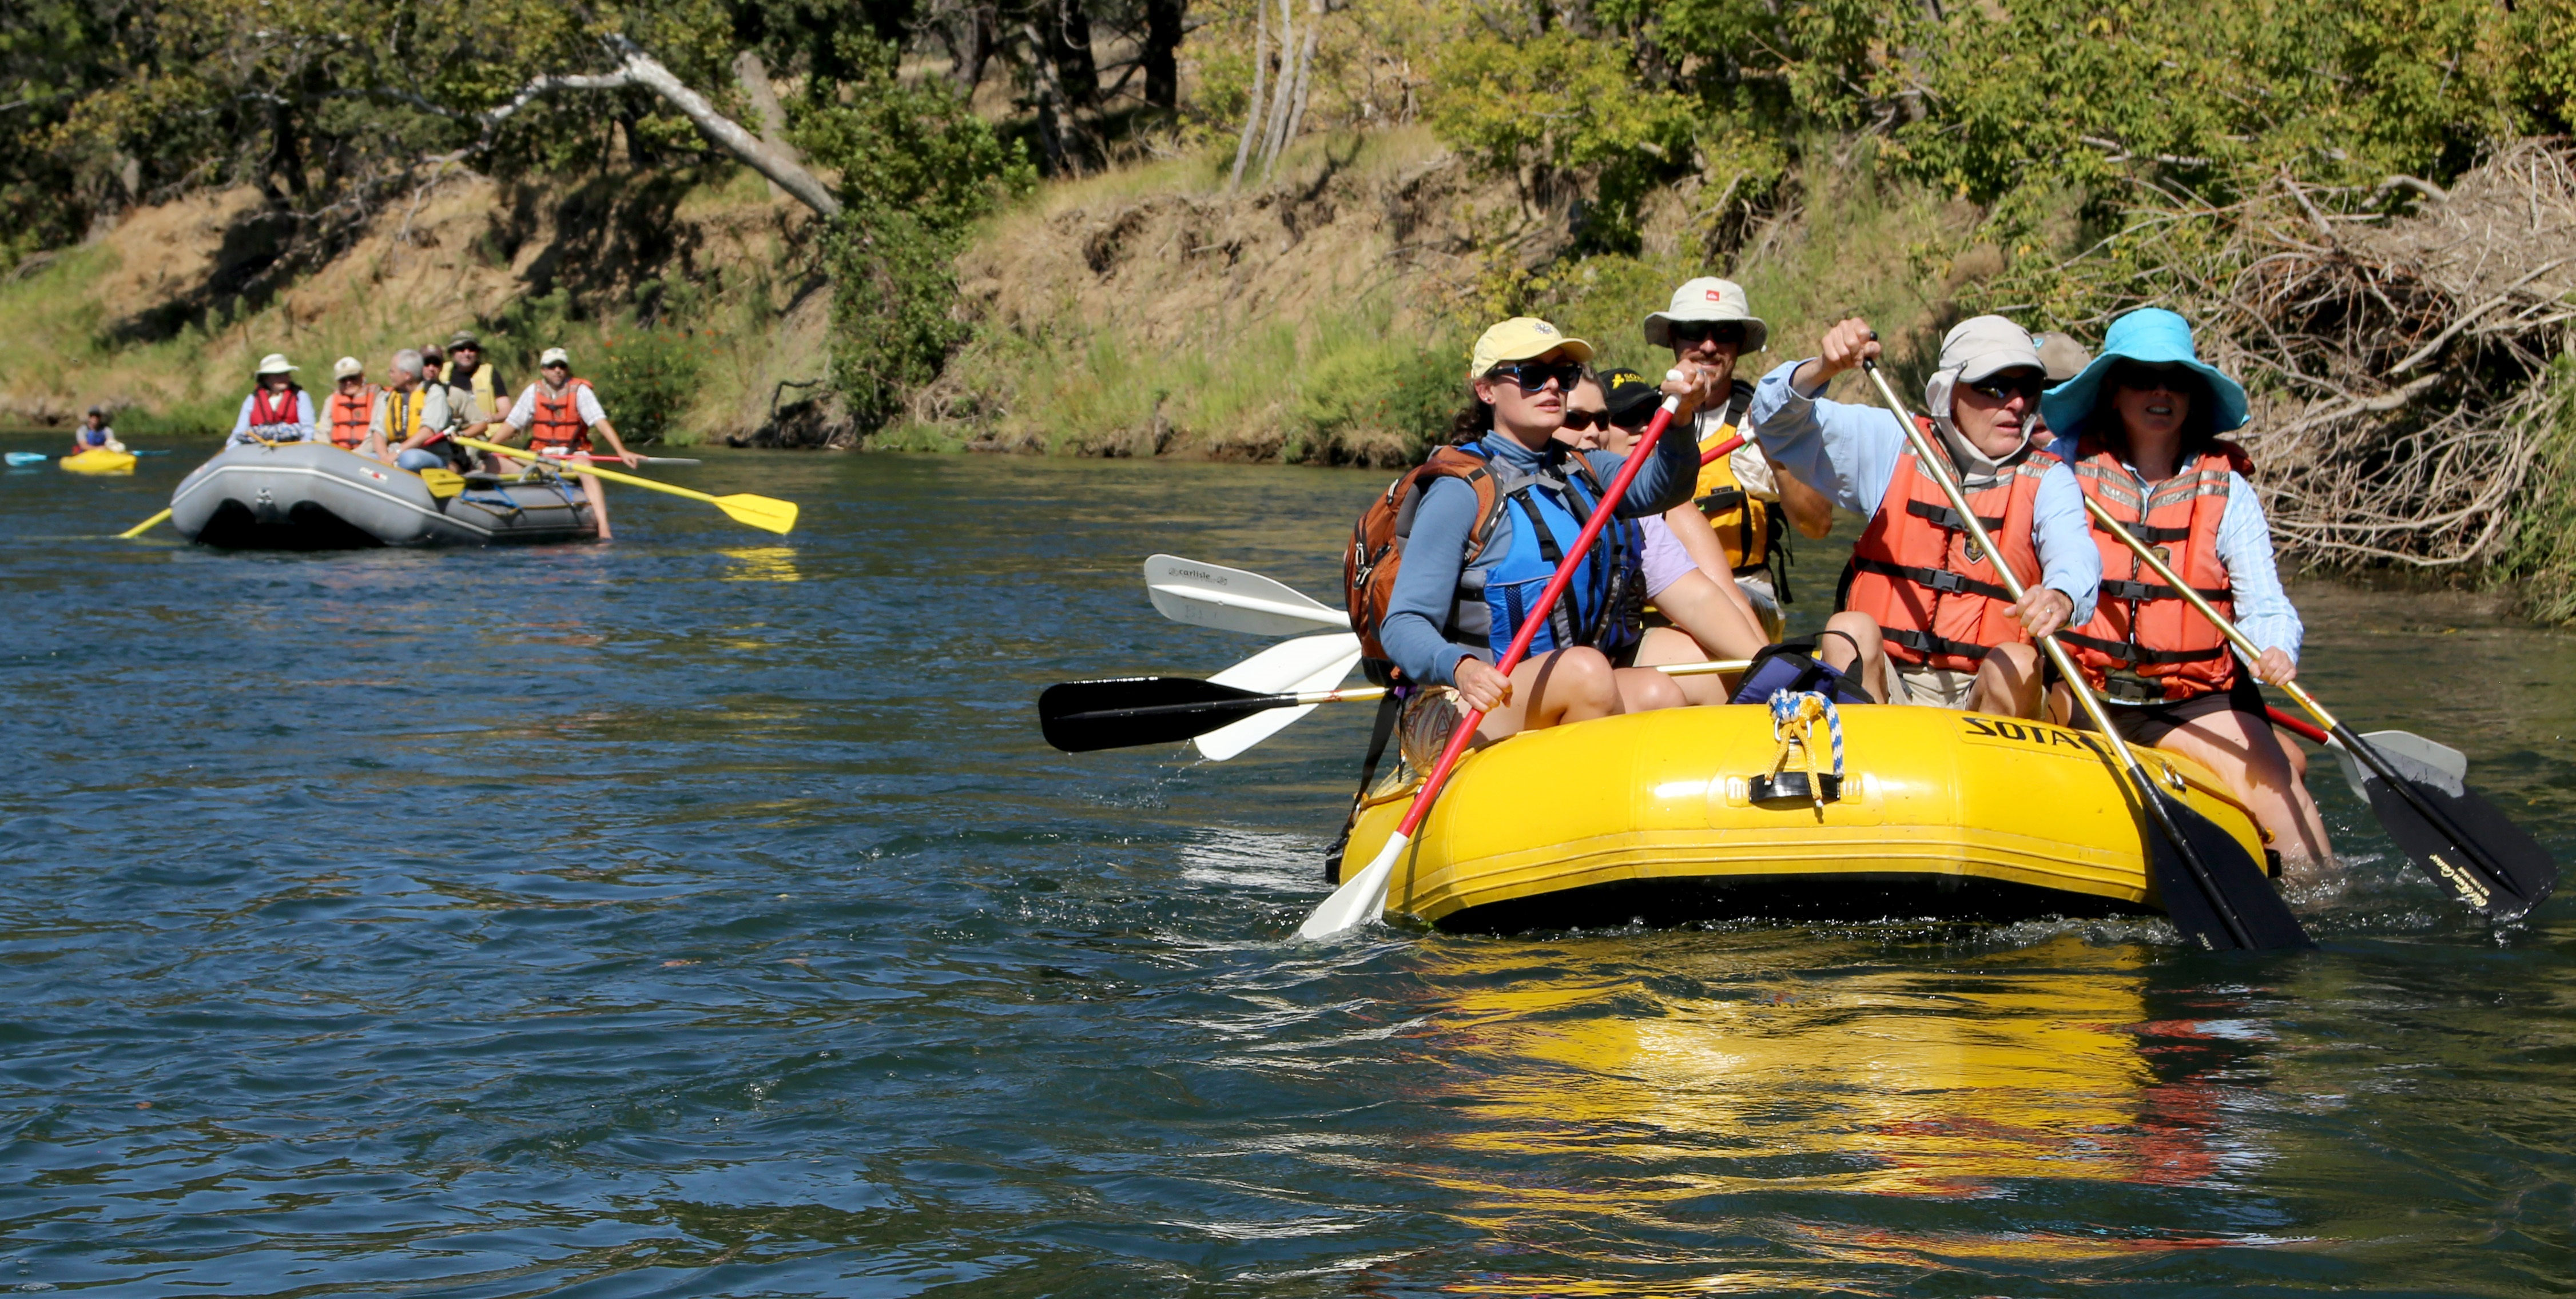 Northern California District RAC members take to the water in the Redding Field Office's Sacramento River Bend Area of Critical Environmental Concern to discuss management issues along 17 miles of public land river access, California, BLM photo